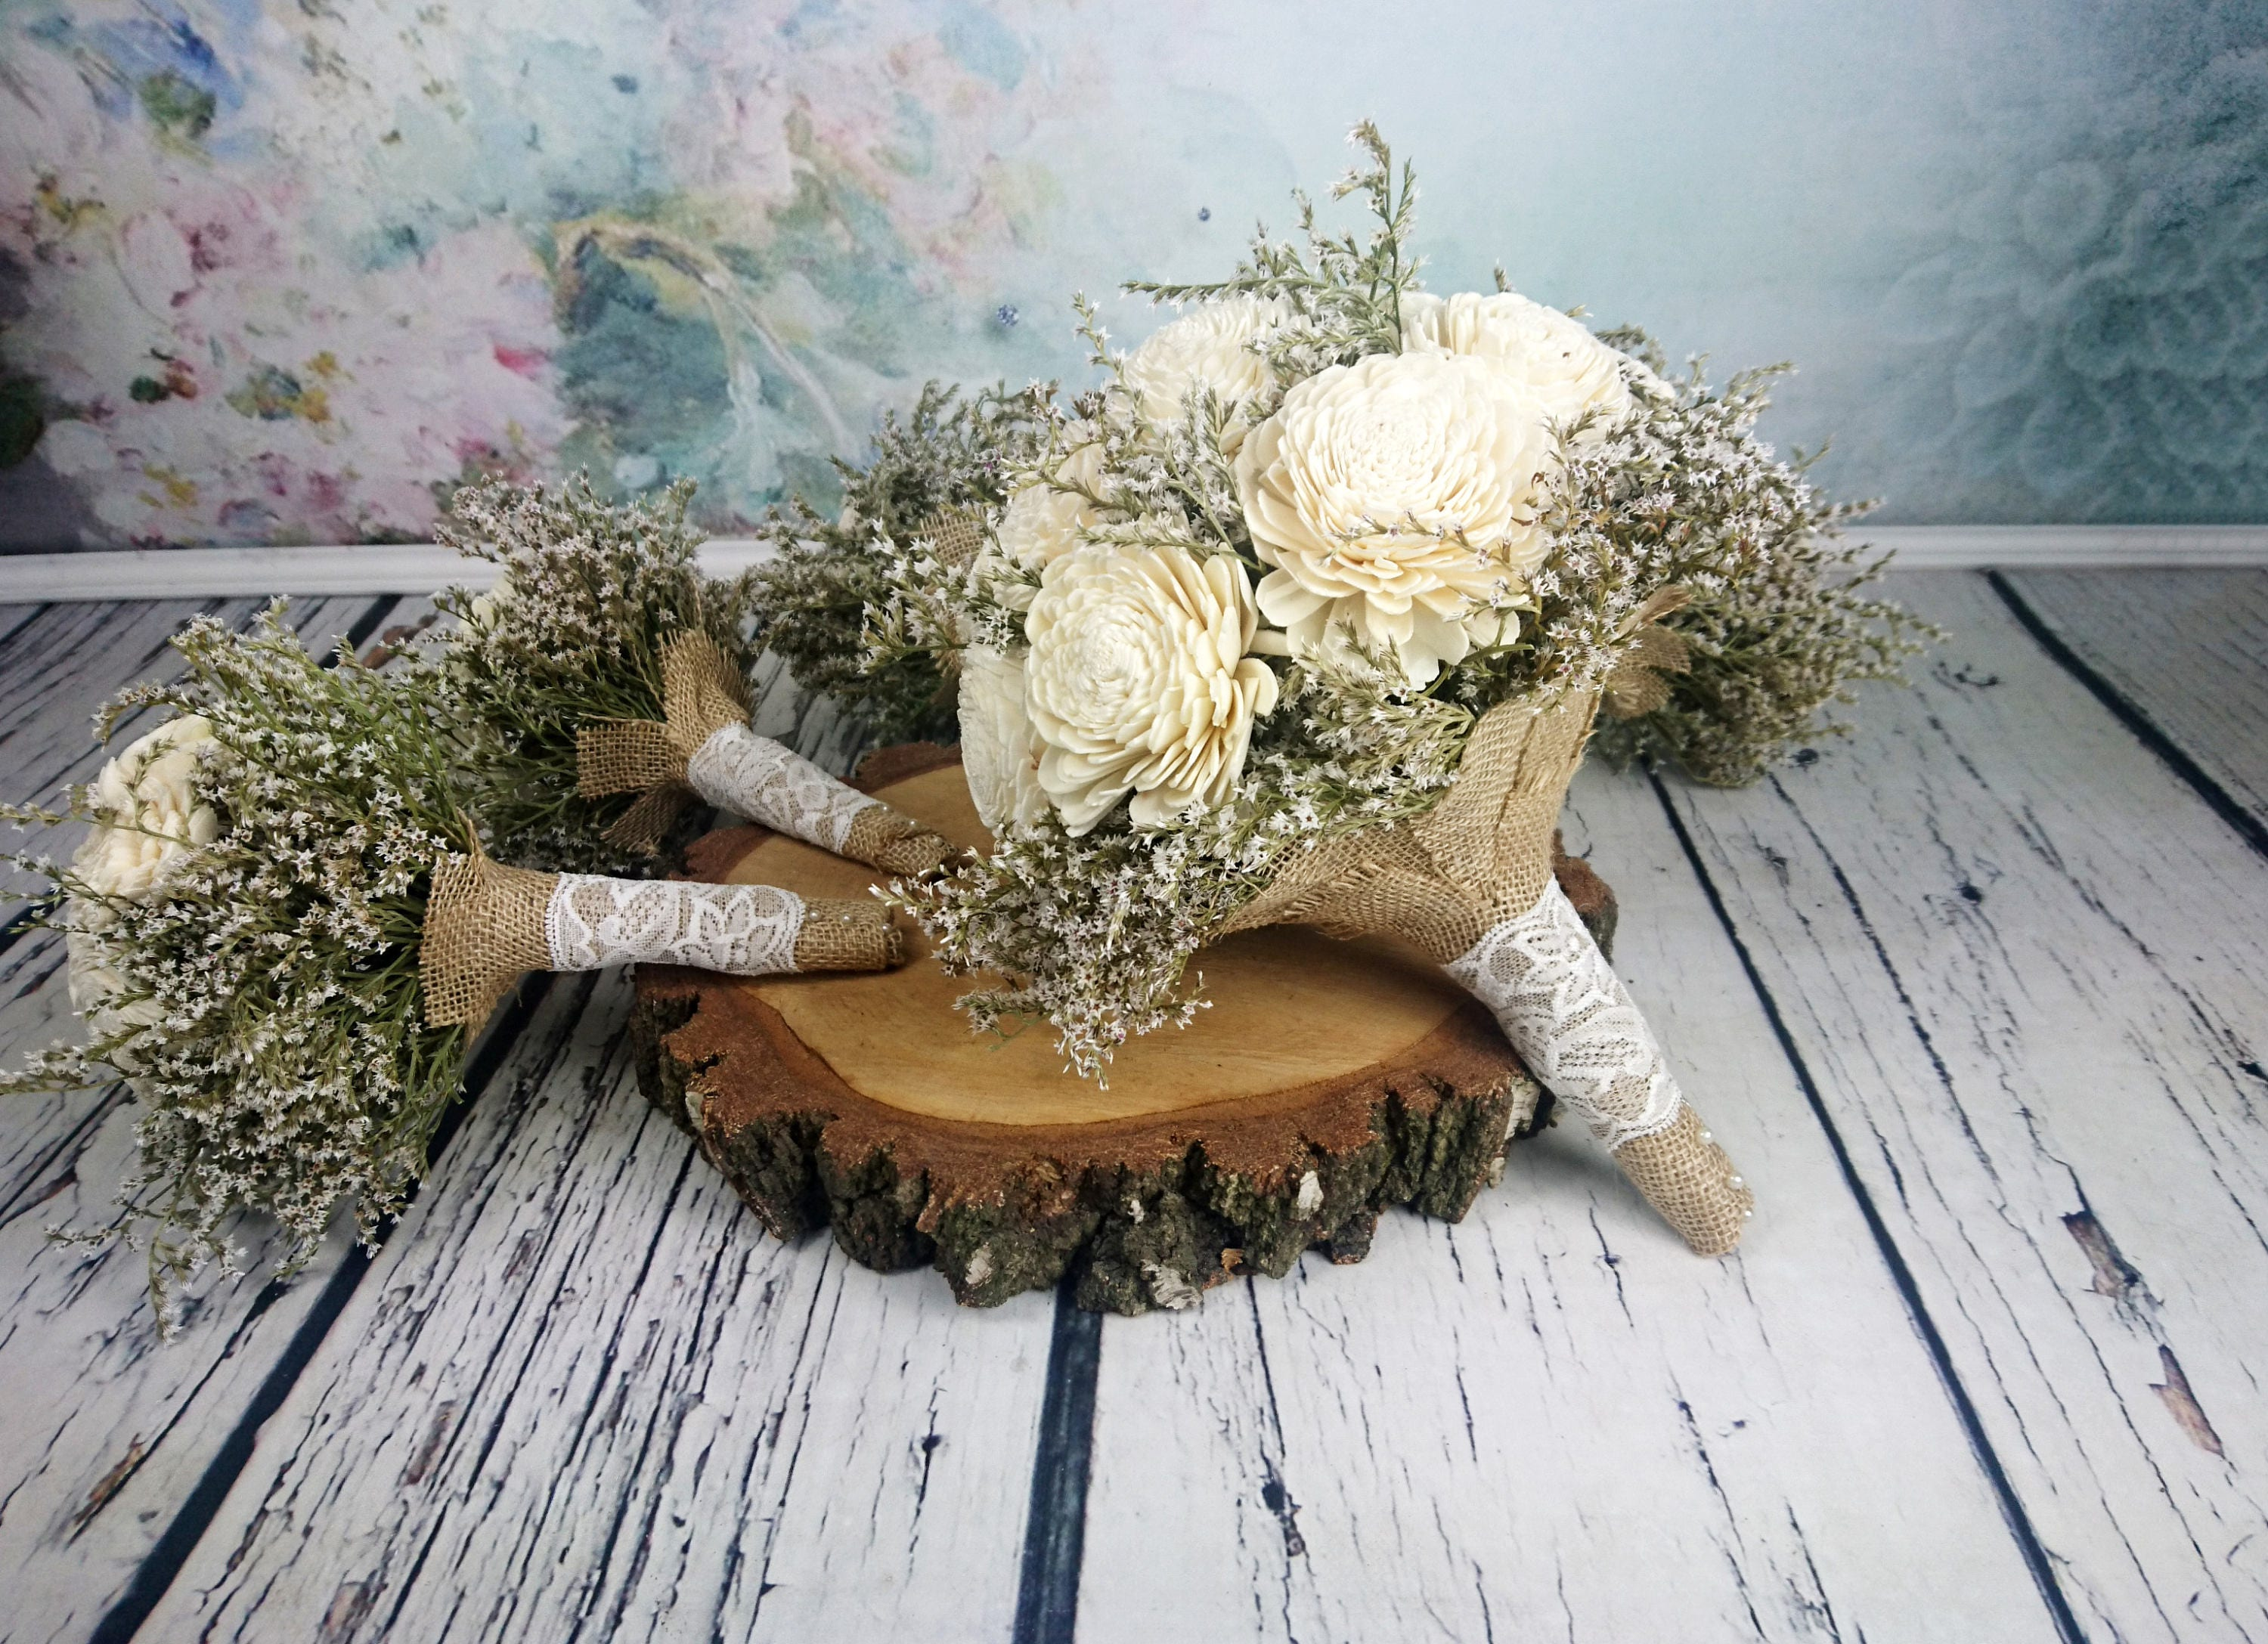 Simple bridal flowers package big bridal 5 small bridesmaids simple bridal flowers package big bridal 5 small bridesmaids bouquets ivory cream rustic wedding dried limonium burlap lace flower girl toss izmirmasajfo Images